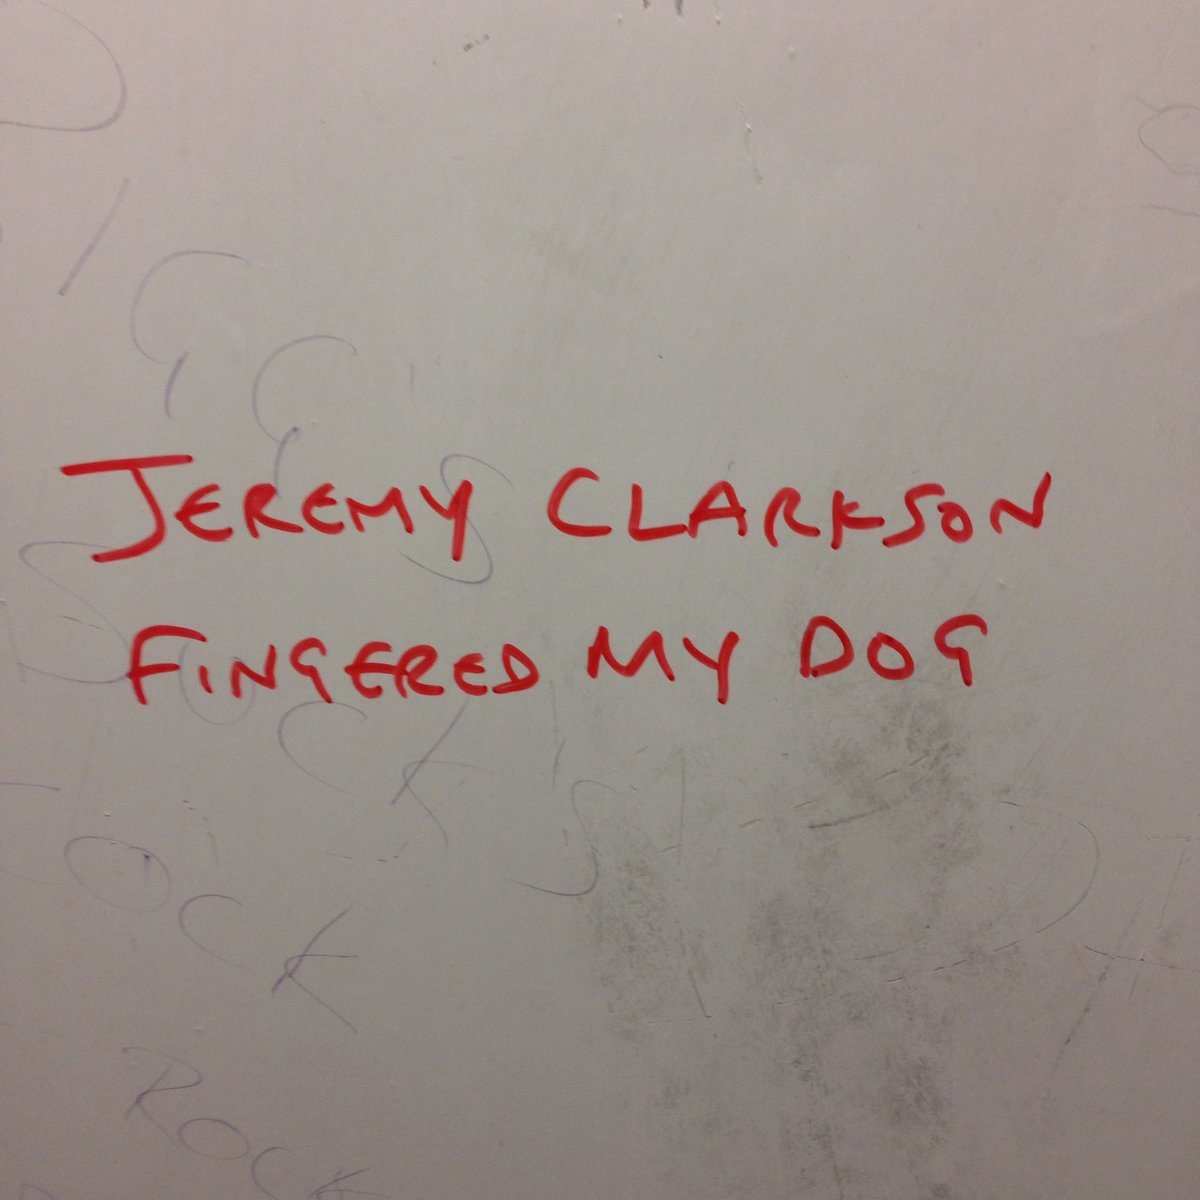 I think this is the best piece of graffiti I've ever seen. https://t.co/2spnLuUui7